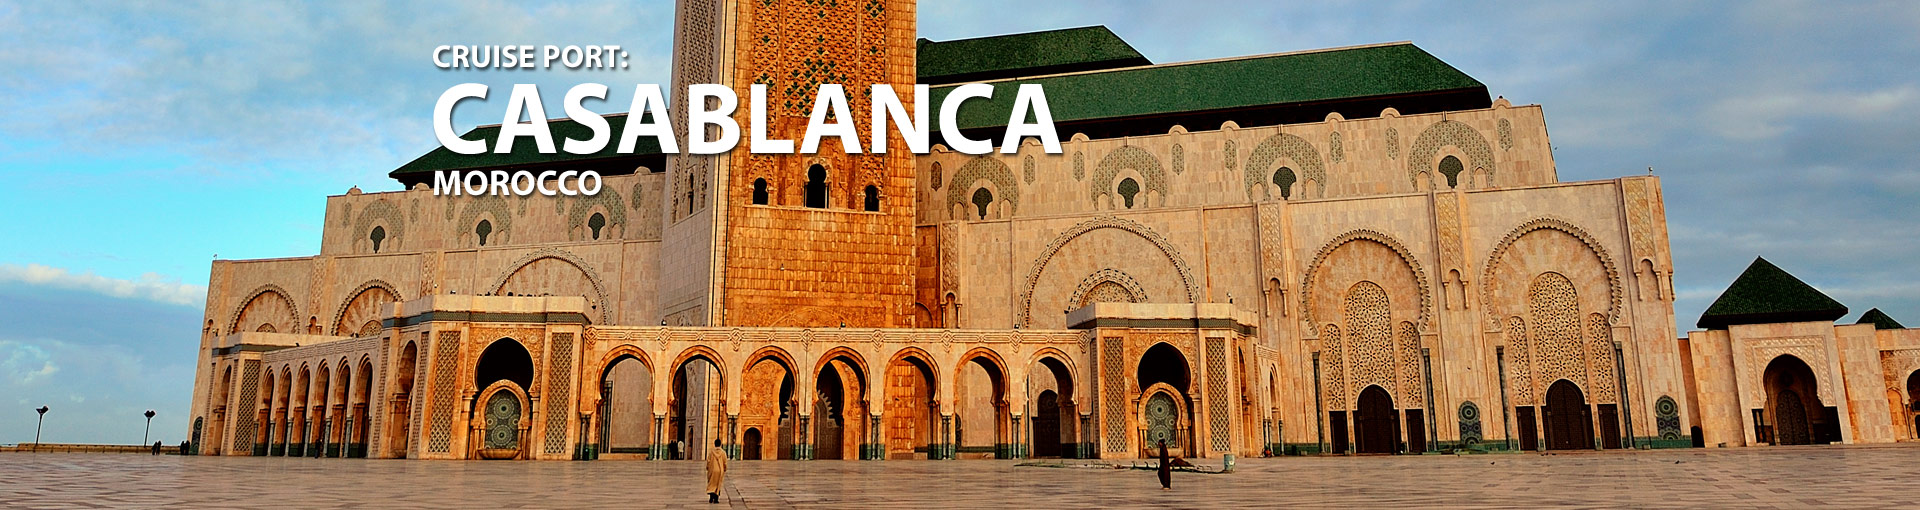 Cruises to Casablanca, Morocco